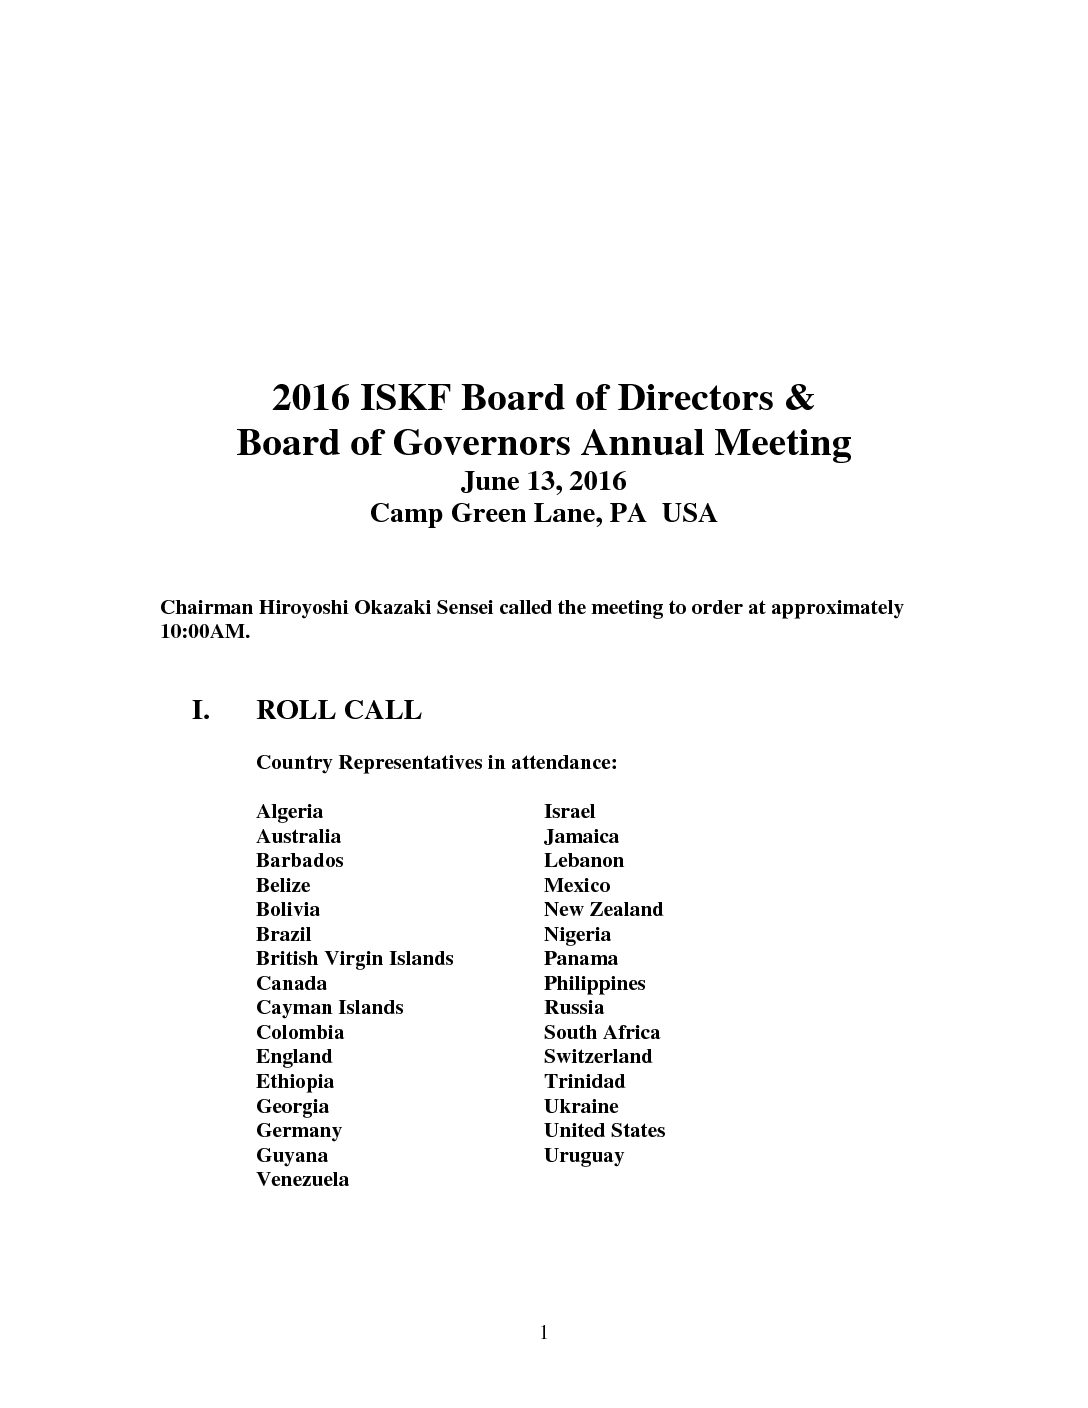 2016-ISKF-Bd-of-Dir-MC